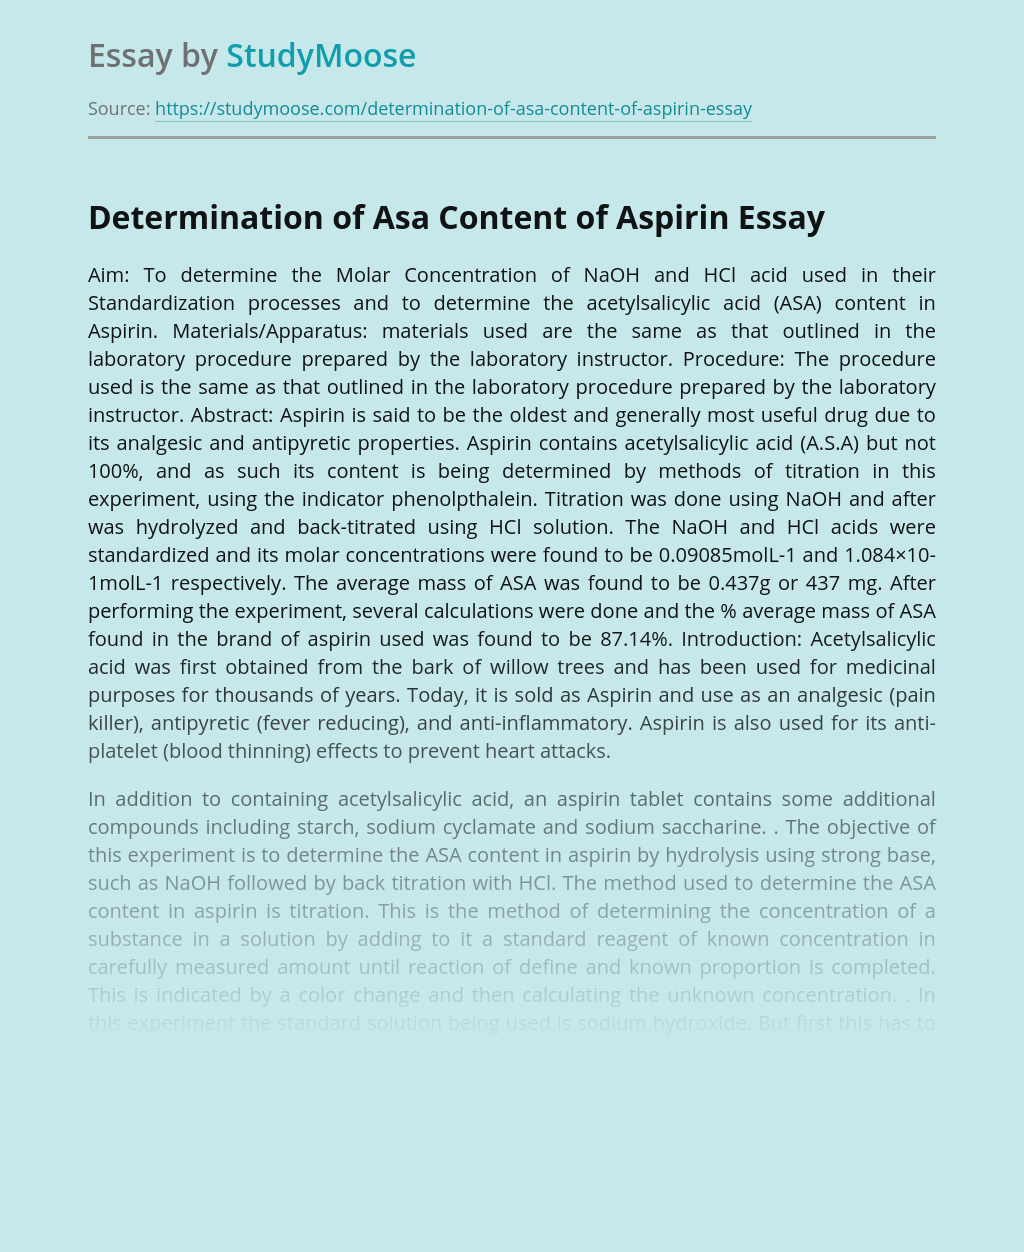 Determination of Asa Content of Aspirin